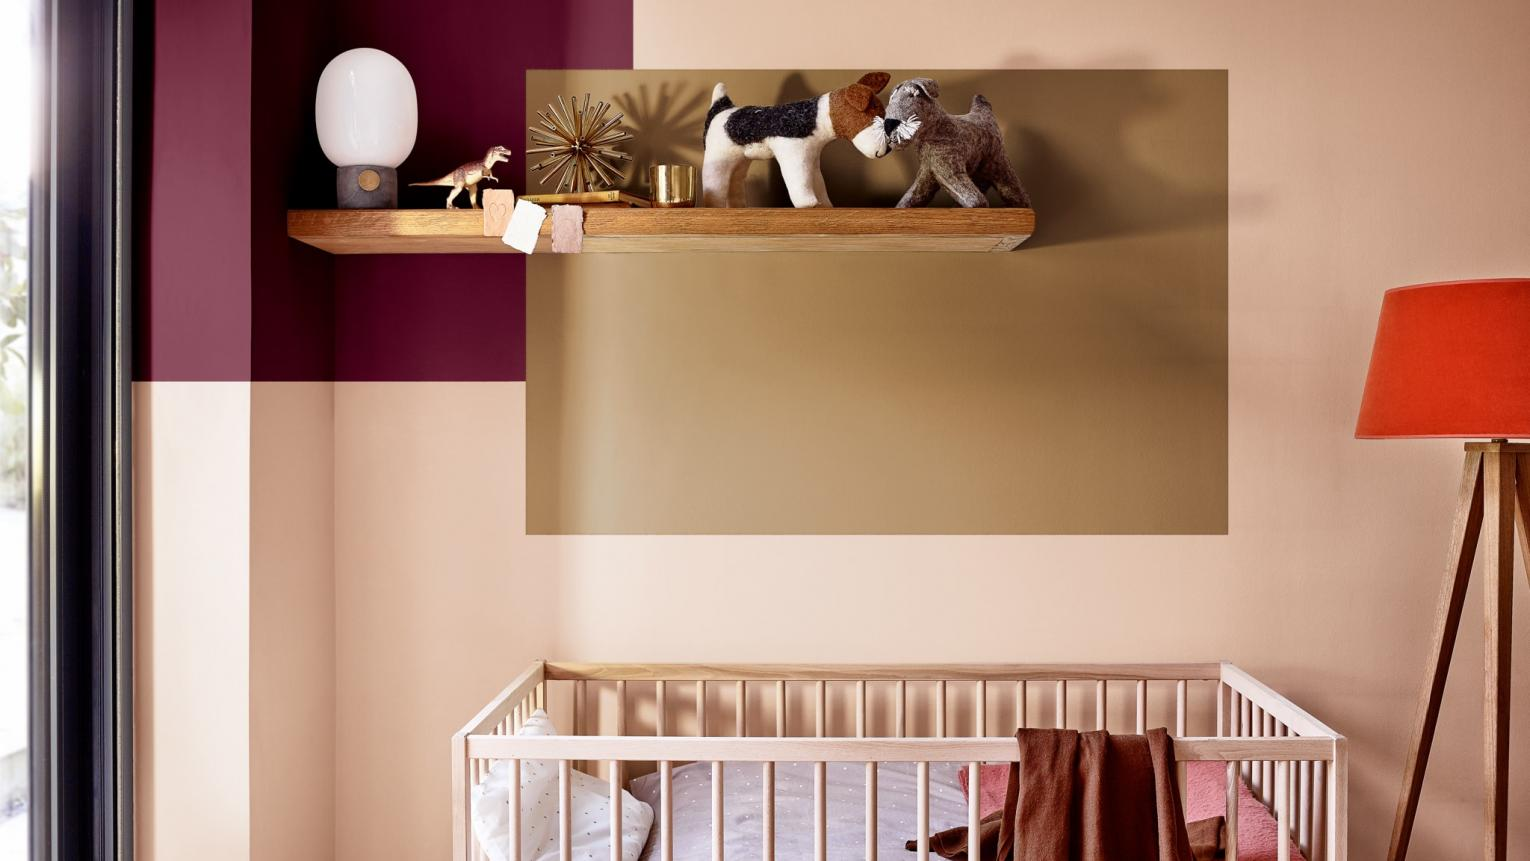 Deco-Paints-Colour-Futures-Colour-of-the-Year-2019-A-place-to-think-Kidsroom-Inspiration-41